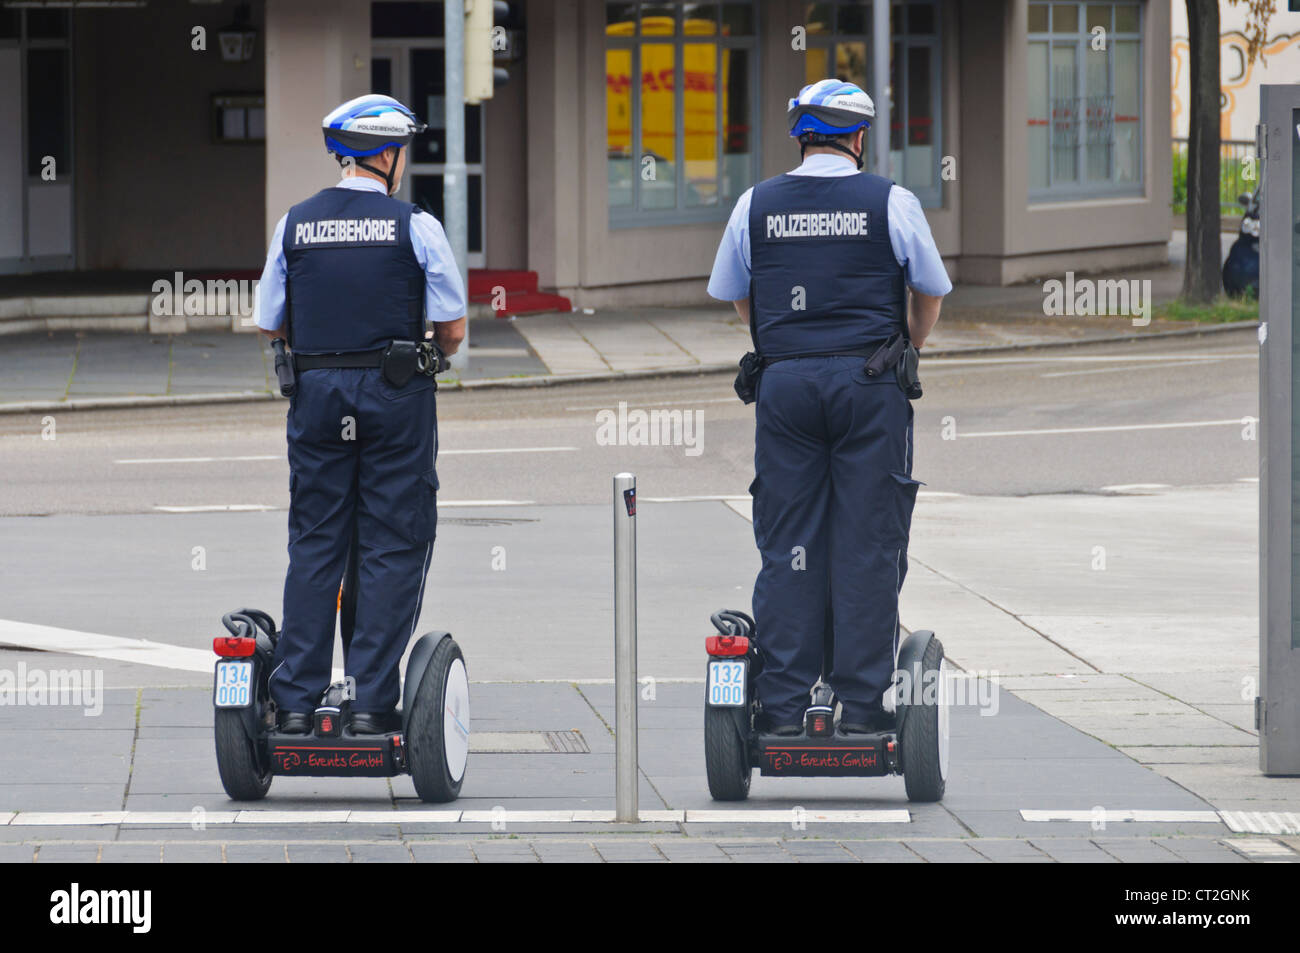 2 German Police Officers On Patrol with Segway Personal Transporter - Heilbronn Germany Stock Photo